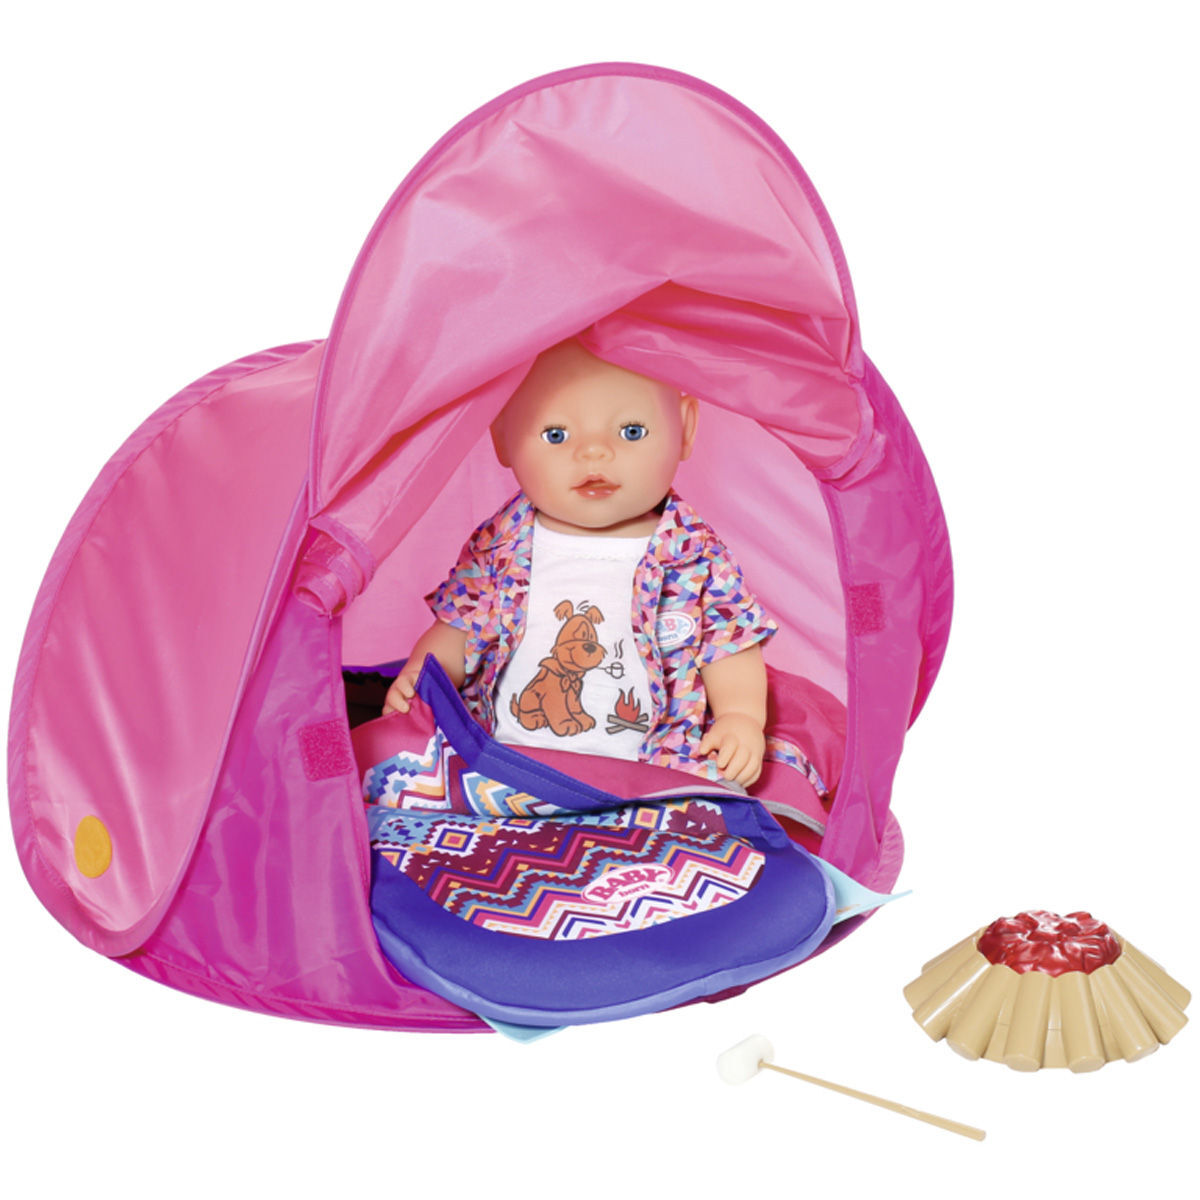 BABY born® Play & Fun Camping Set